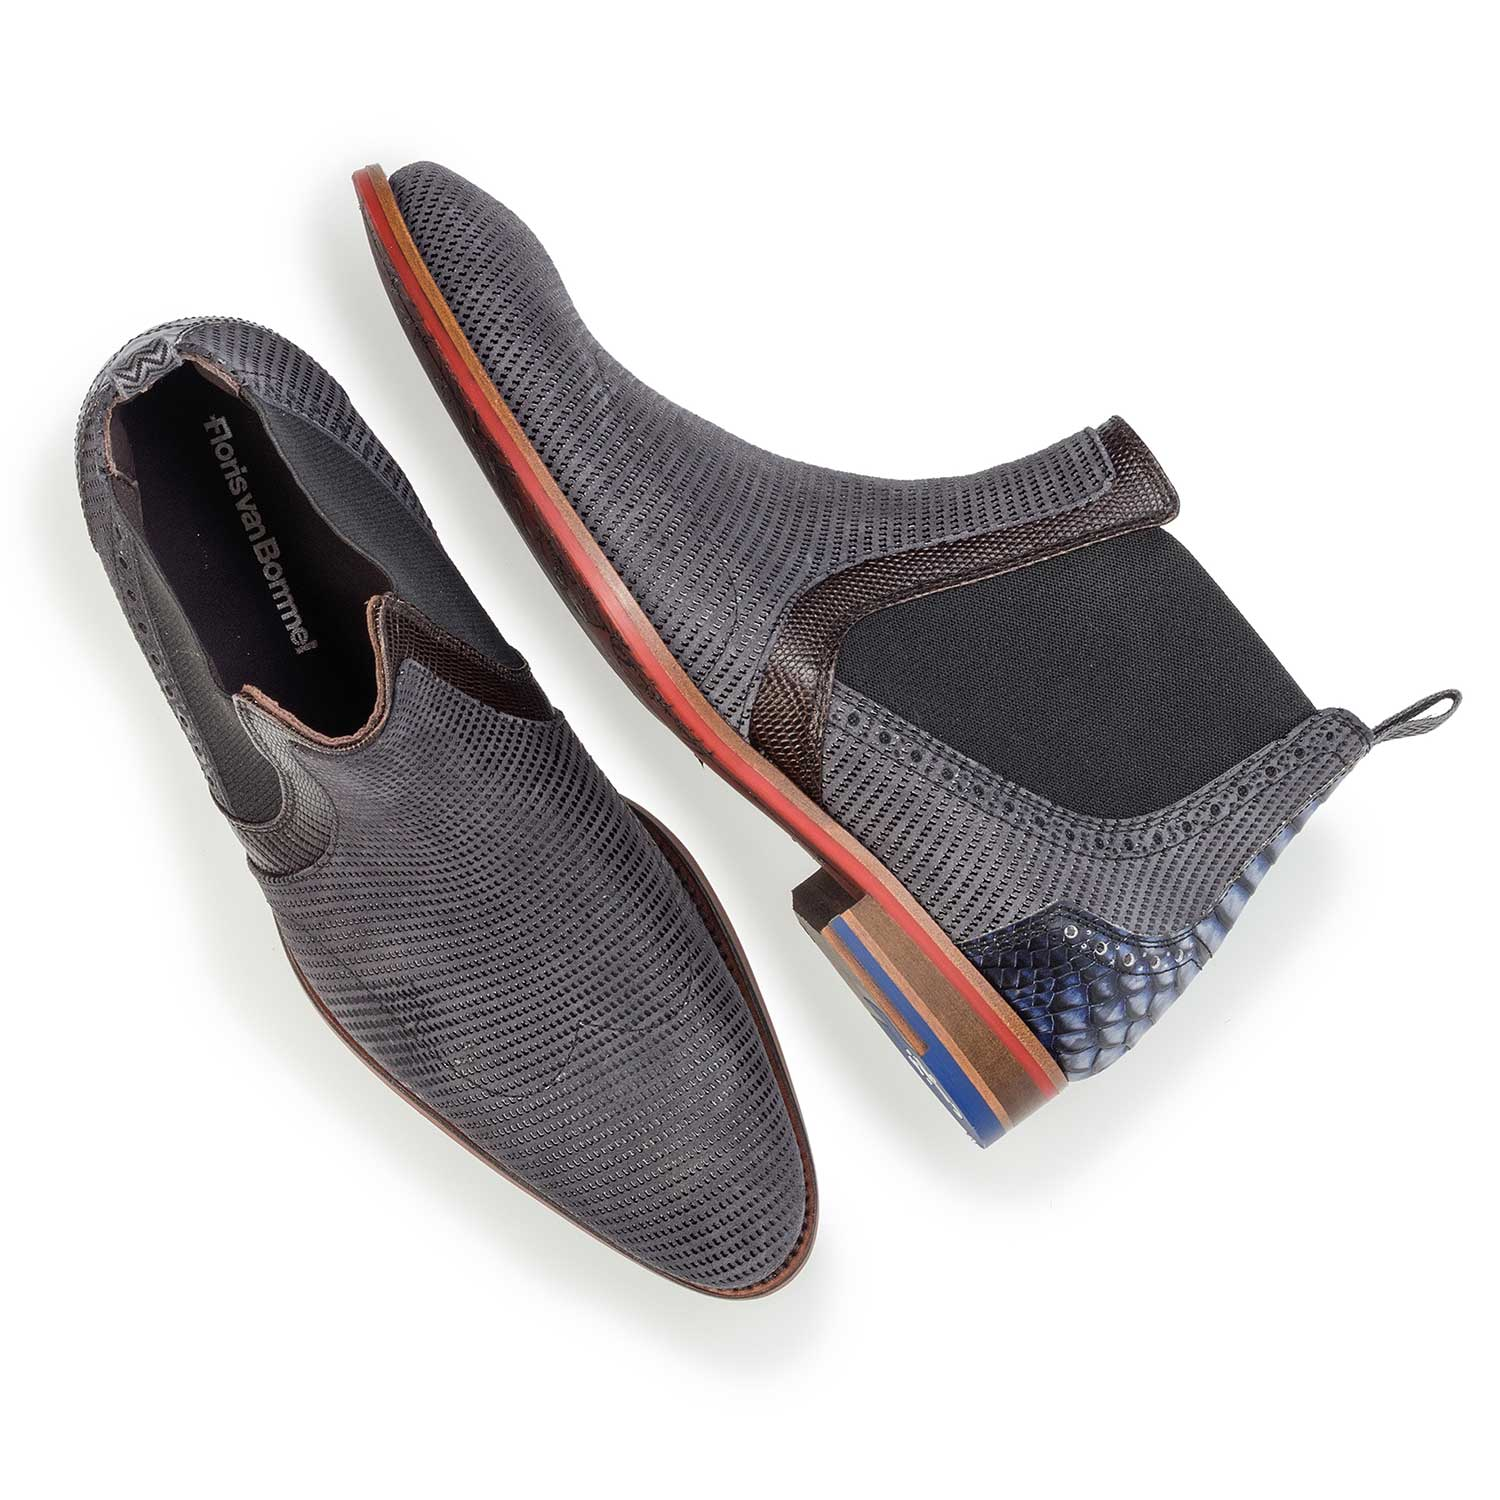 10455/00 - Dark grey suede leather Chelsea boot